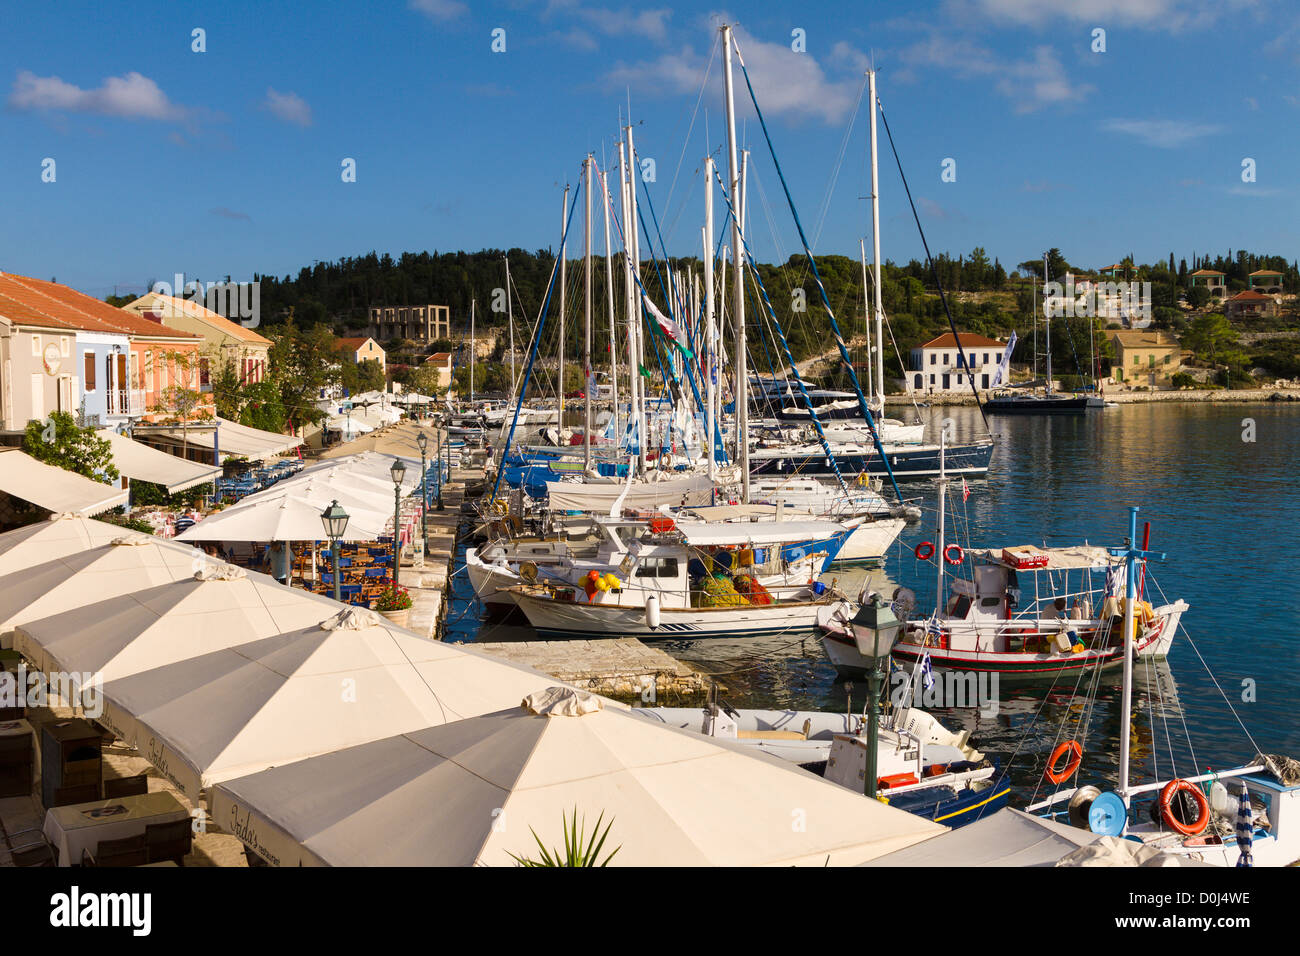 Boats moored in front of tavernas at Fiscardo, Kefalonia, Greece - Stock Image